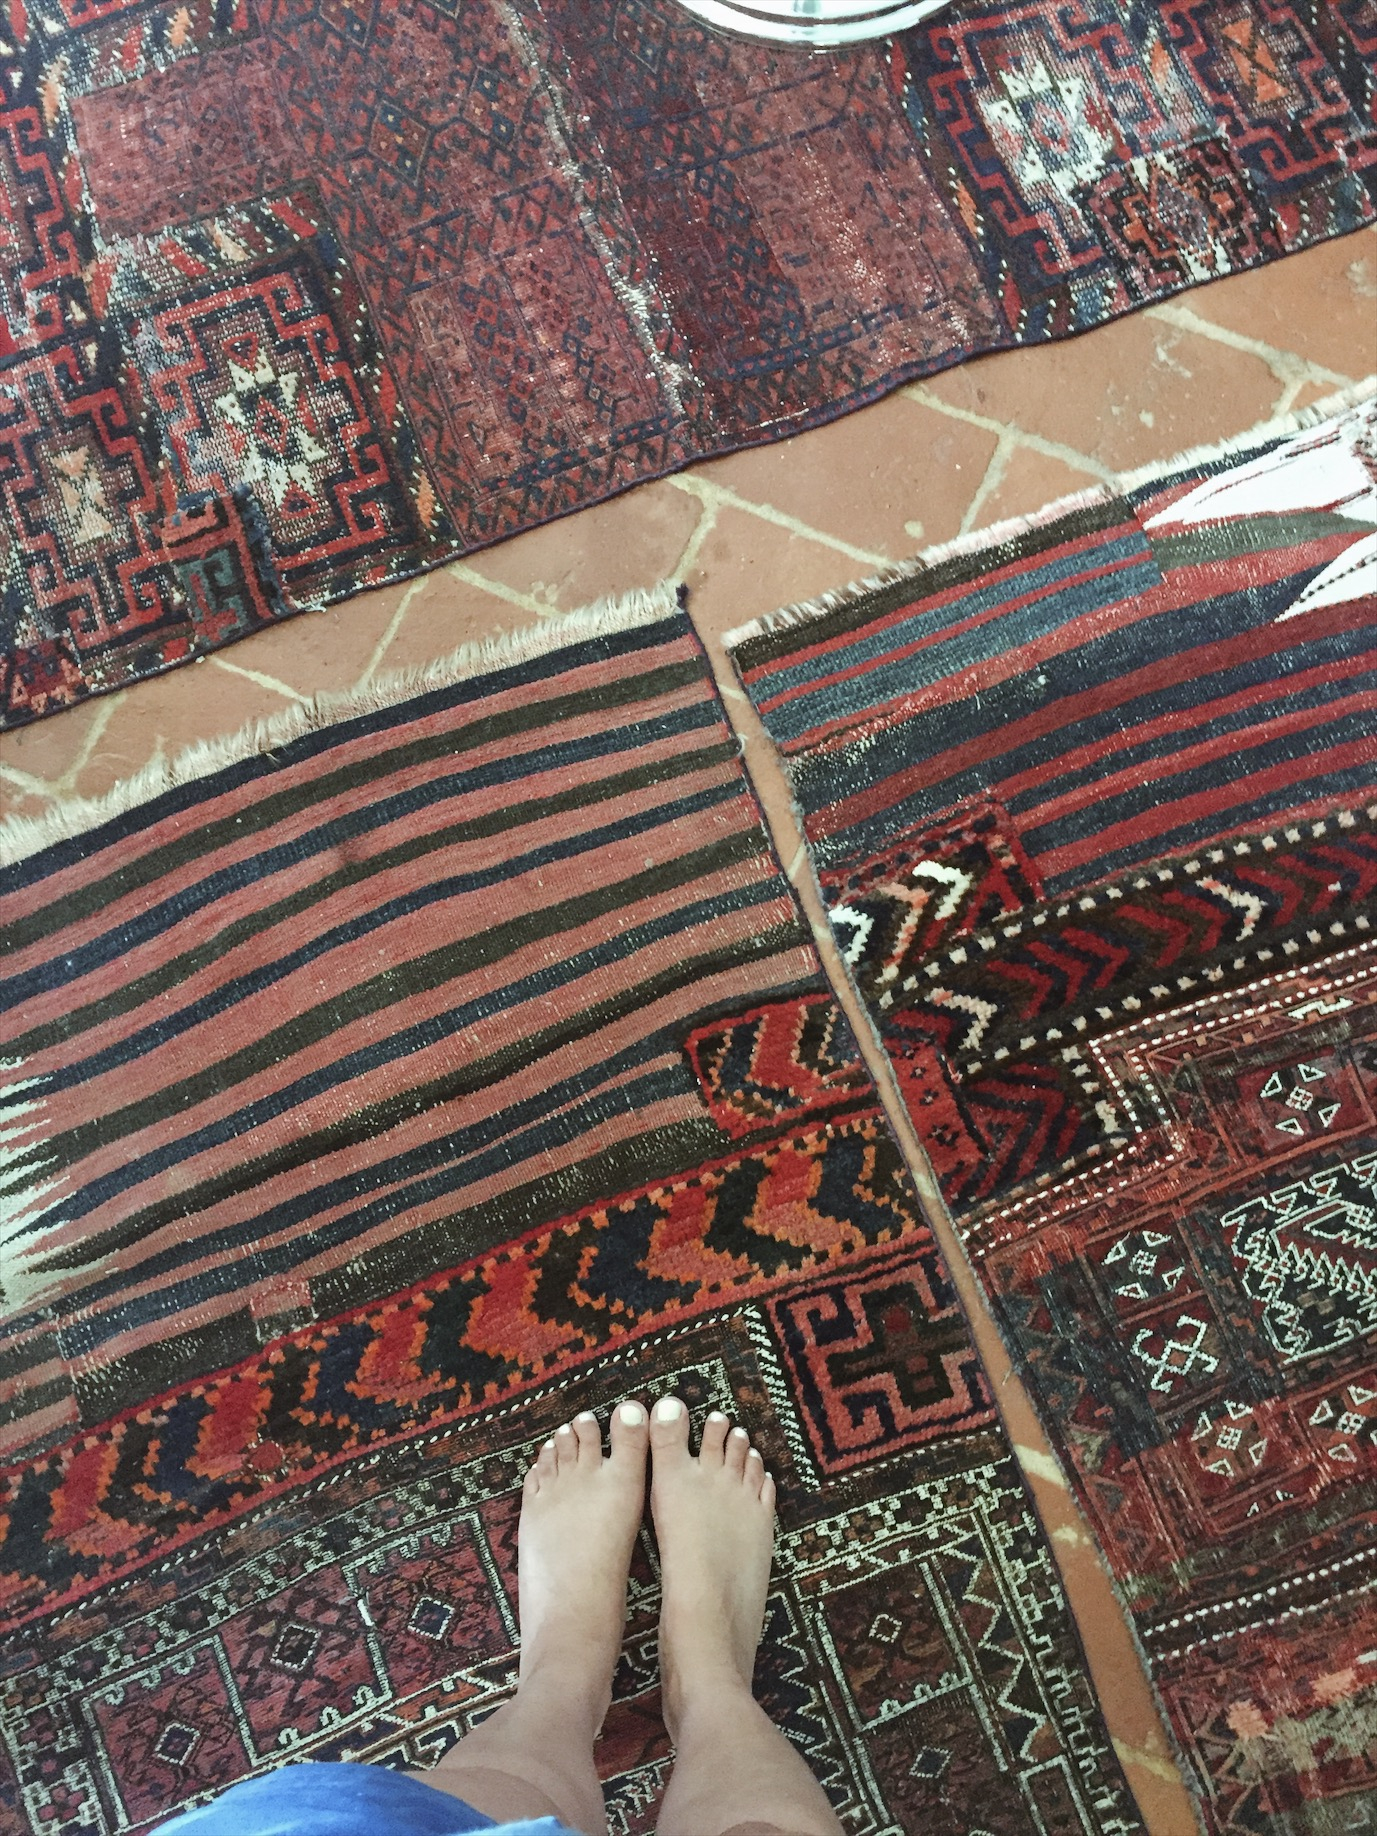 Rugs at Borgo Pignano.jpg